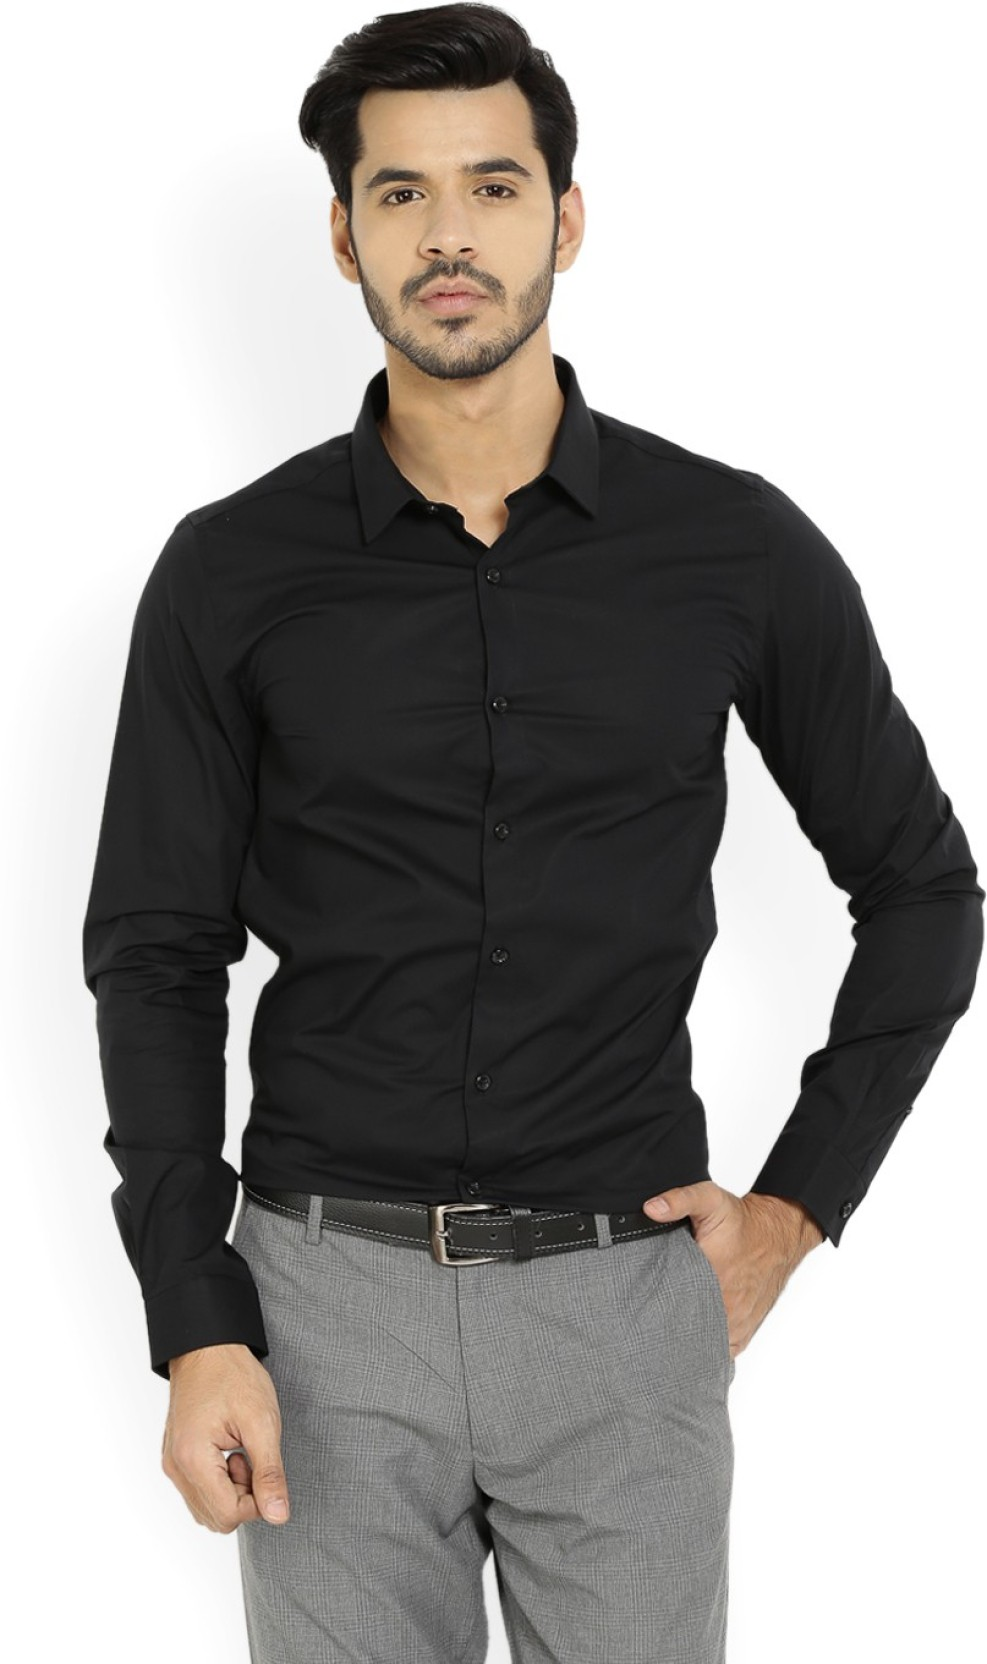 United colors of benetton men 39 s solid formal black shirt for Black tuxedo shirt for men